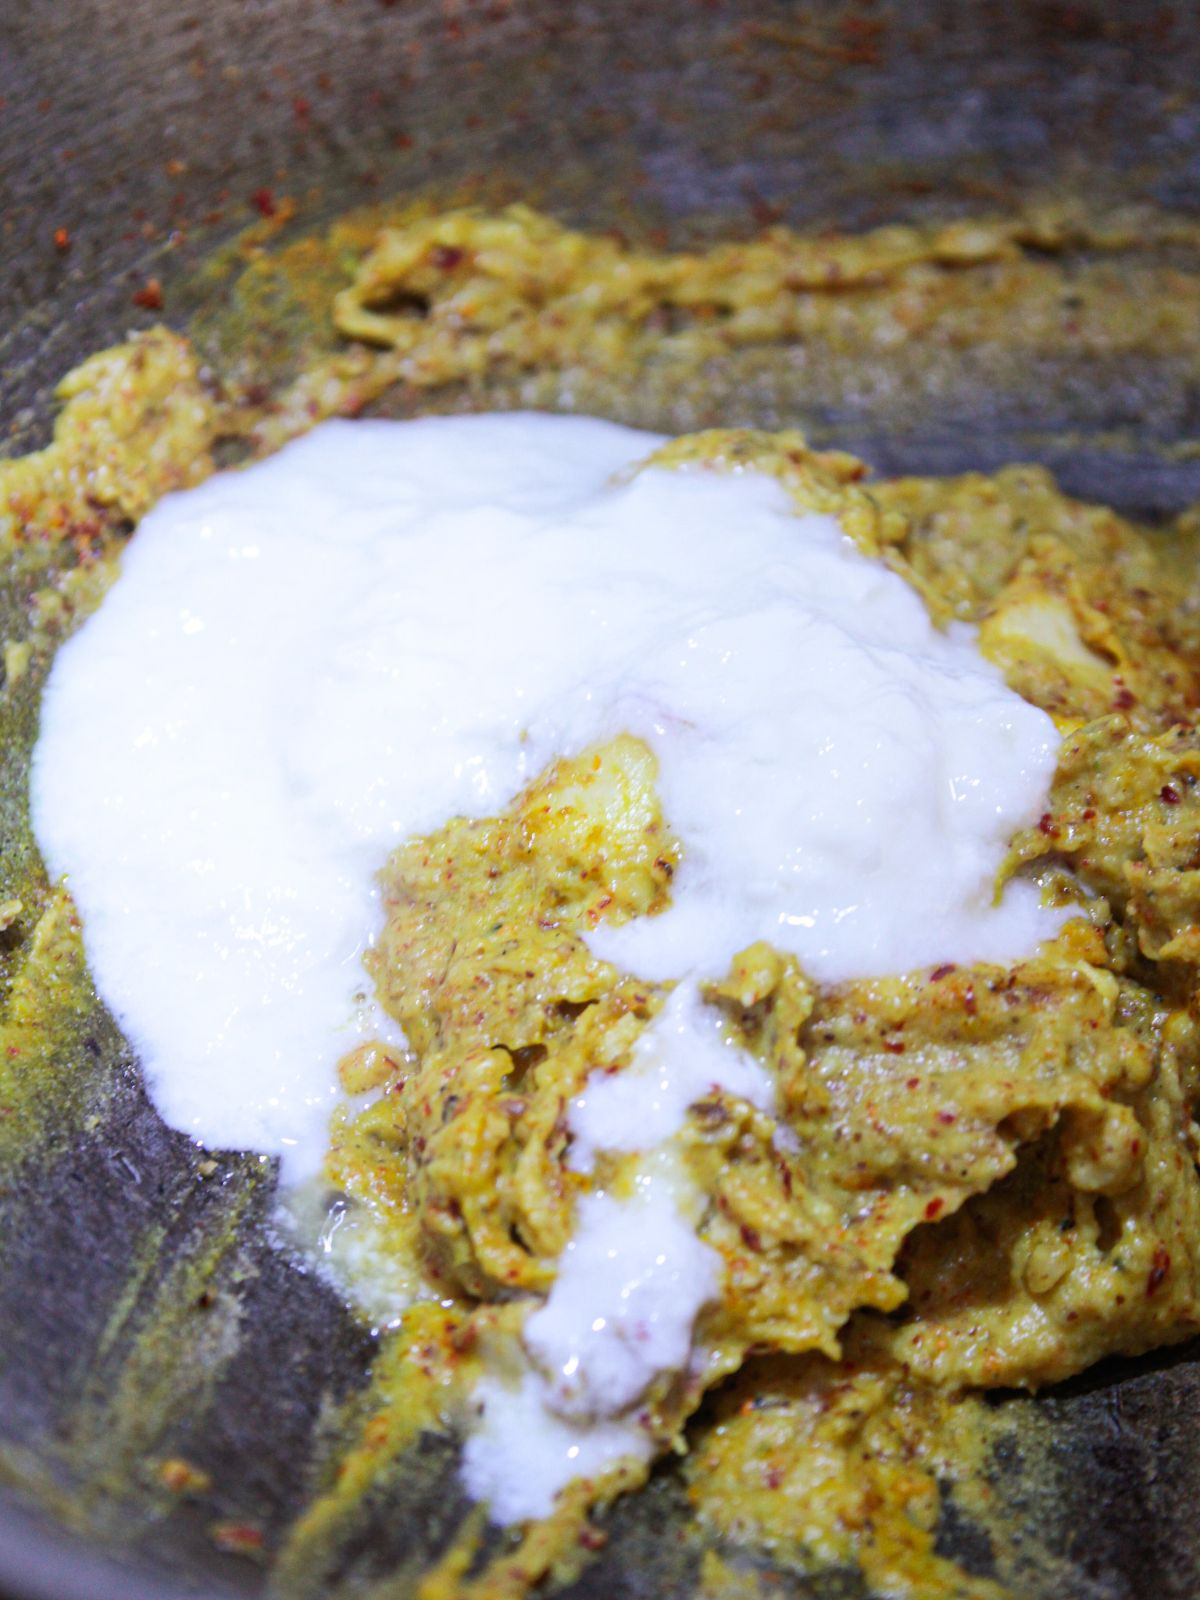 Yogurt poured over curry mixture in skillet